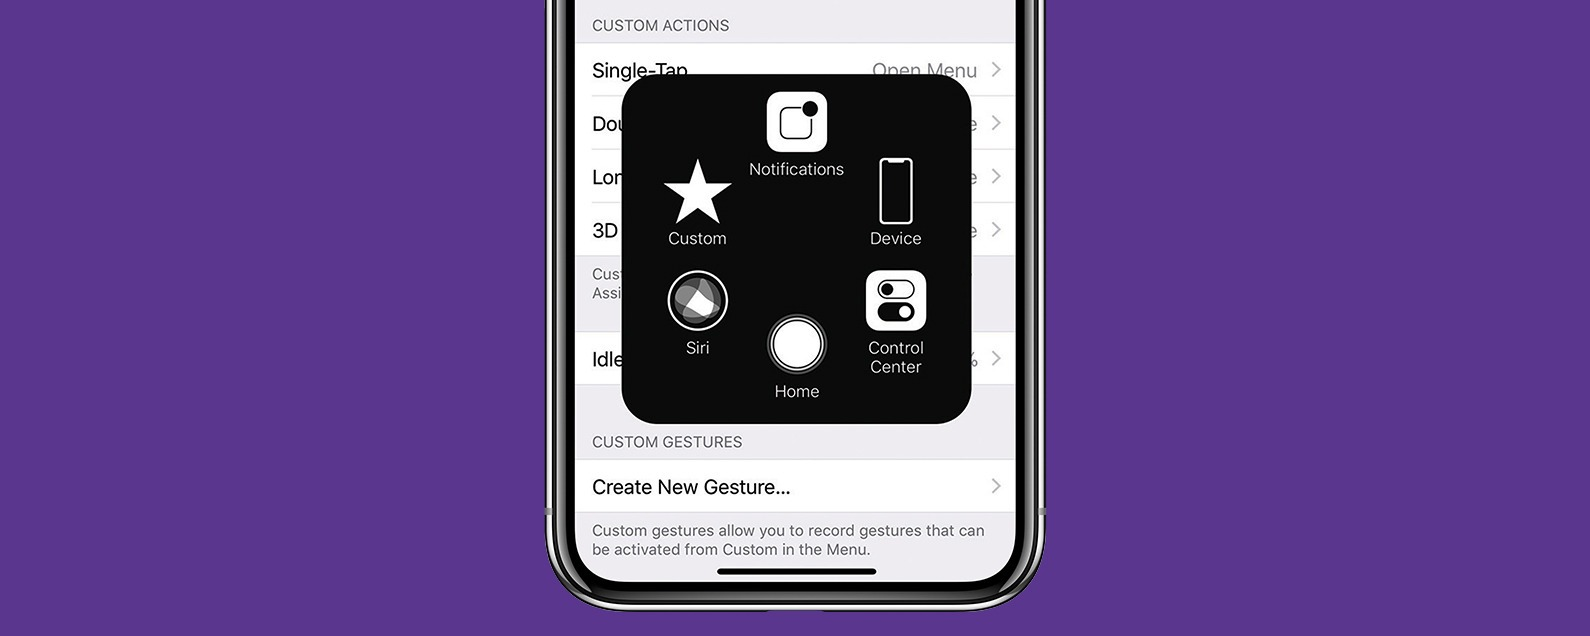 reputable site 6c7b0 2639d How to Add an On-Screen Home Button to Your iPhone X | iPhoneLife.com